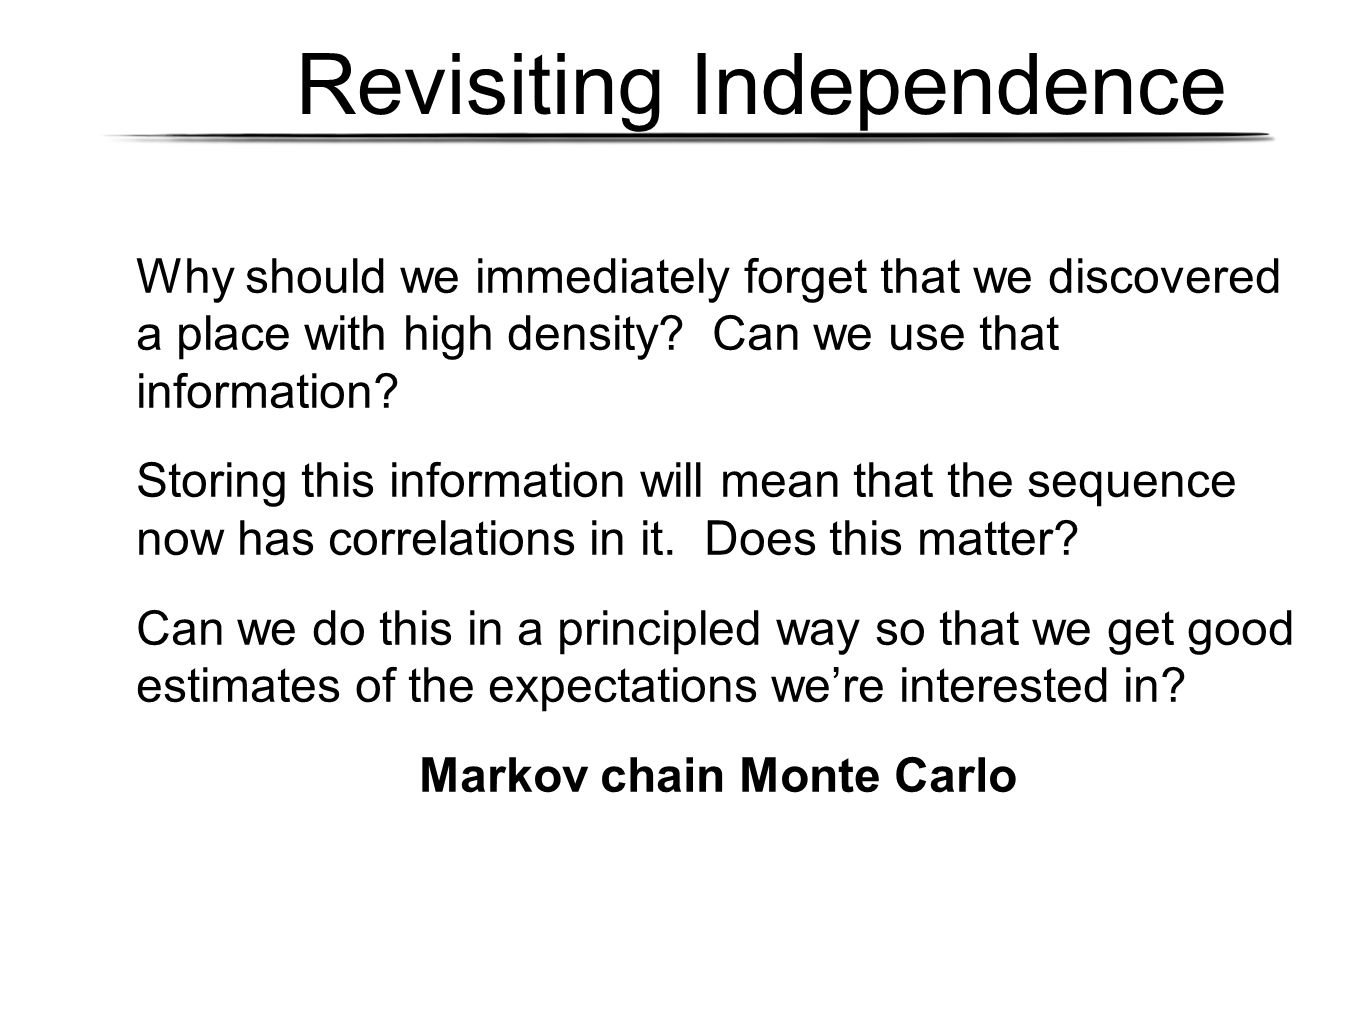 Revisiting Independence Why should we immediately forget that we discovered a place with high density? Can we use that information? Storing this infor